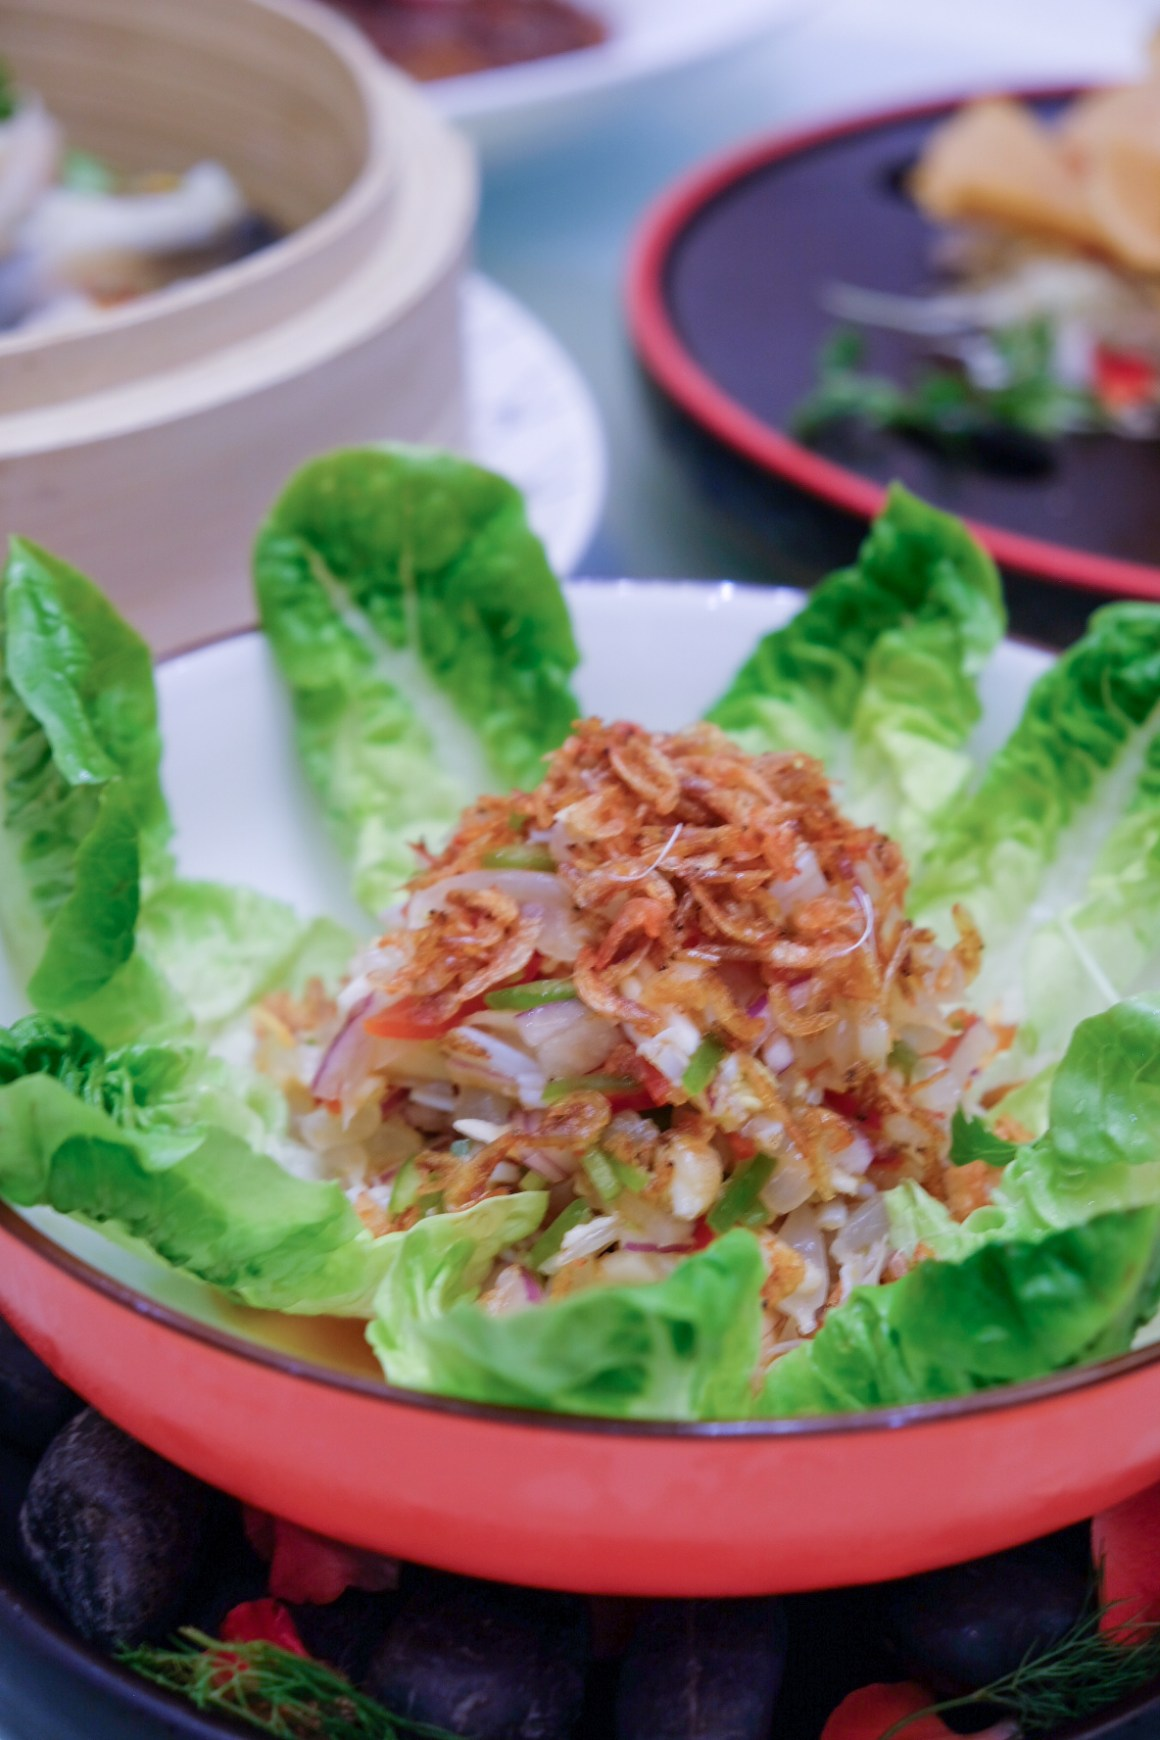 Garden salad with crab meat, pomelo & sakura ebi ($14.80)